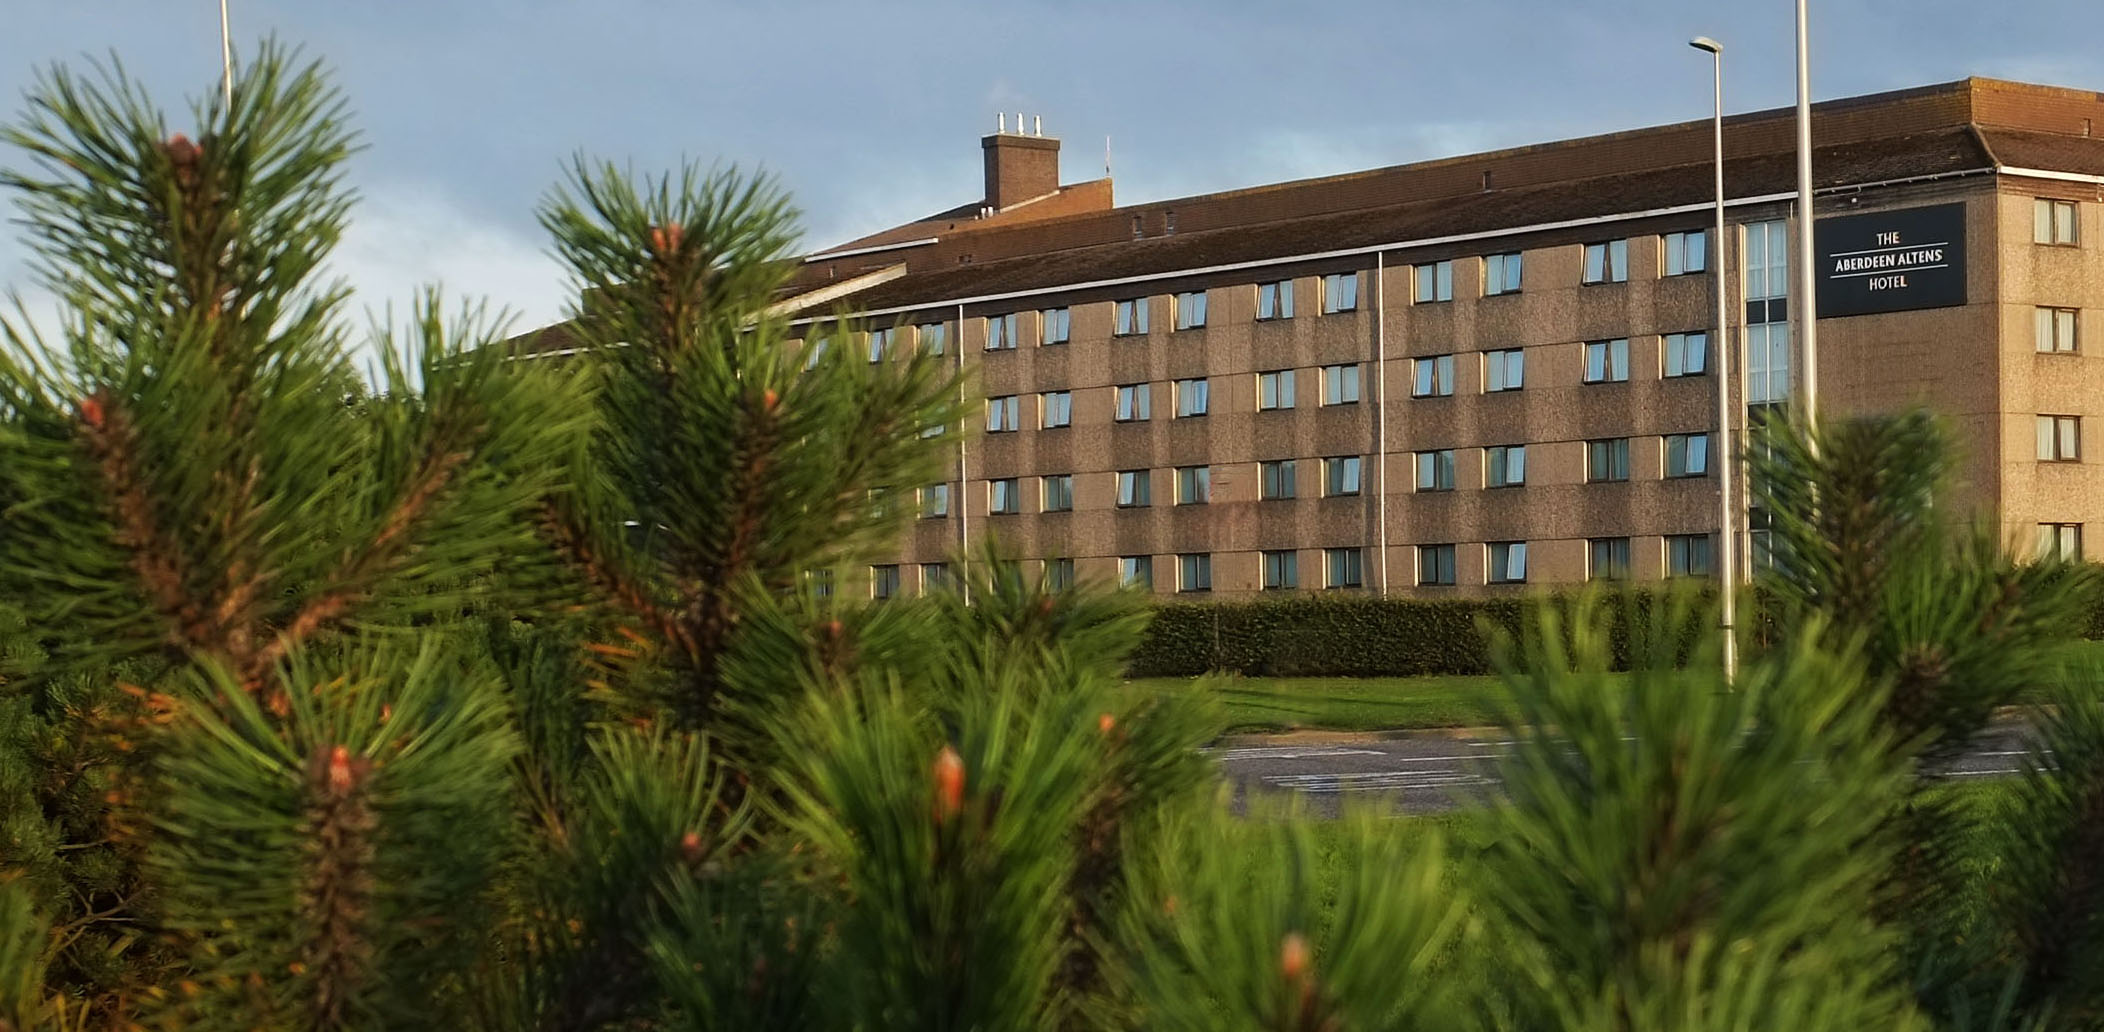 Conference Venue Details The Aberdeen Altens Hotel,Cove ...